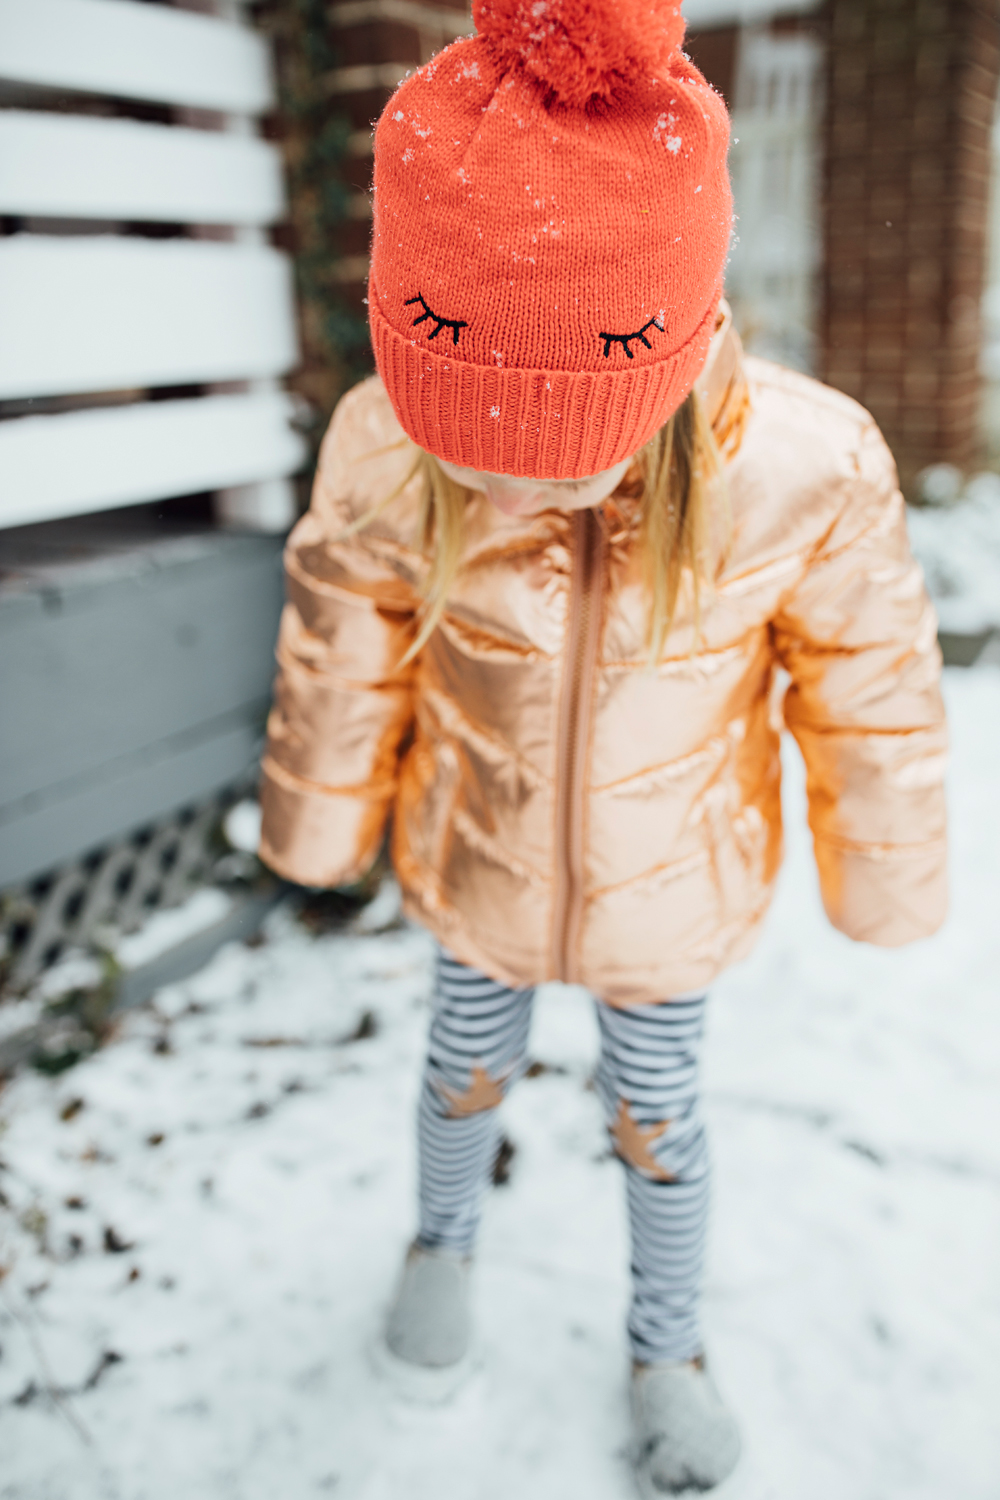 brookecourtney_snowday_prayers_lancasterblogger-11.jpg